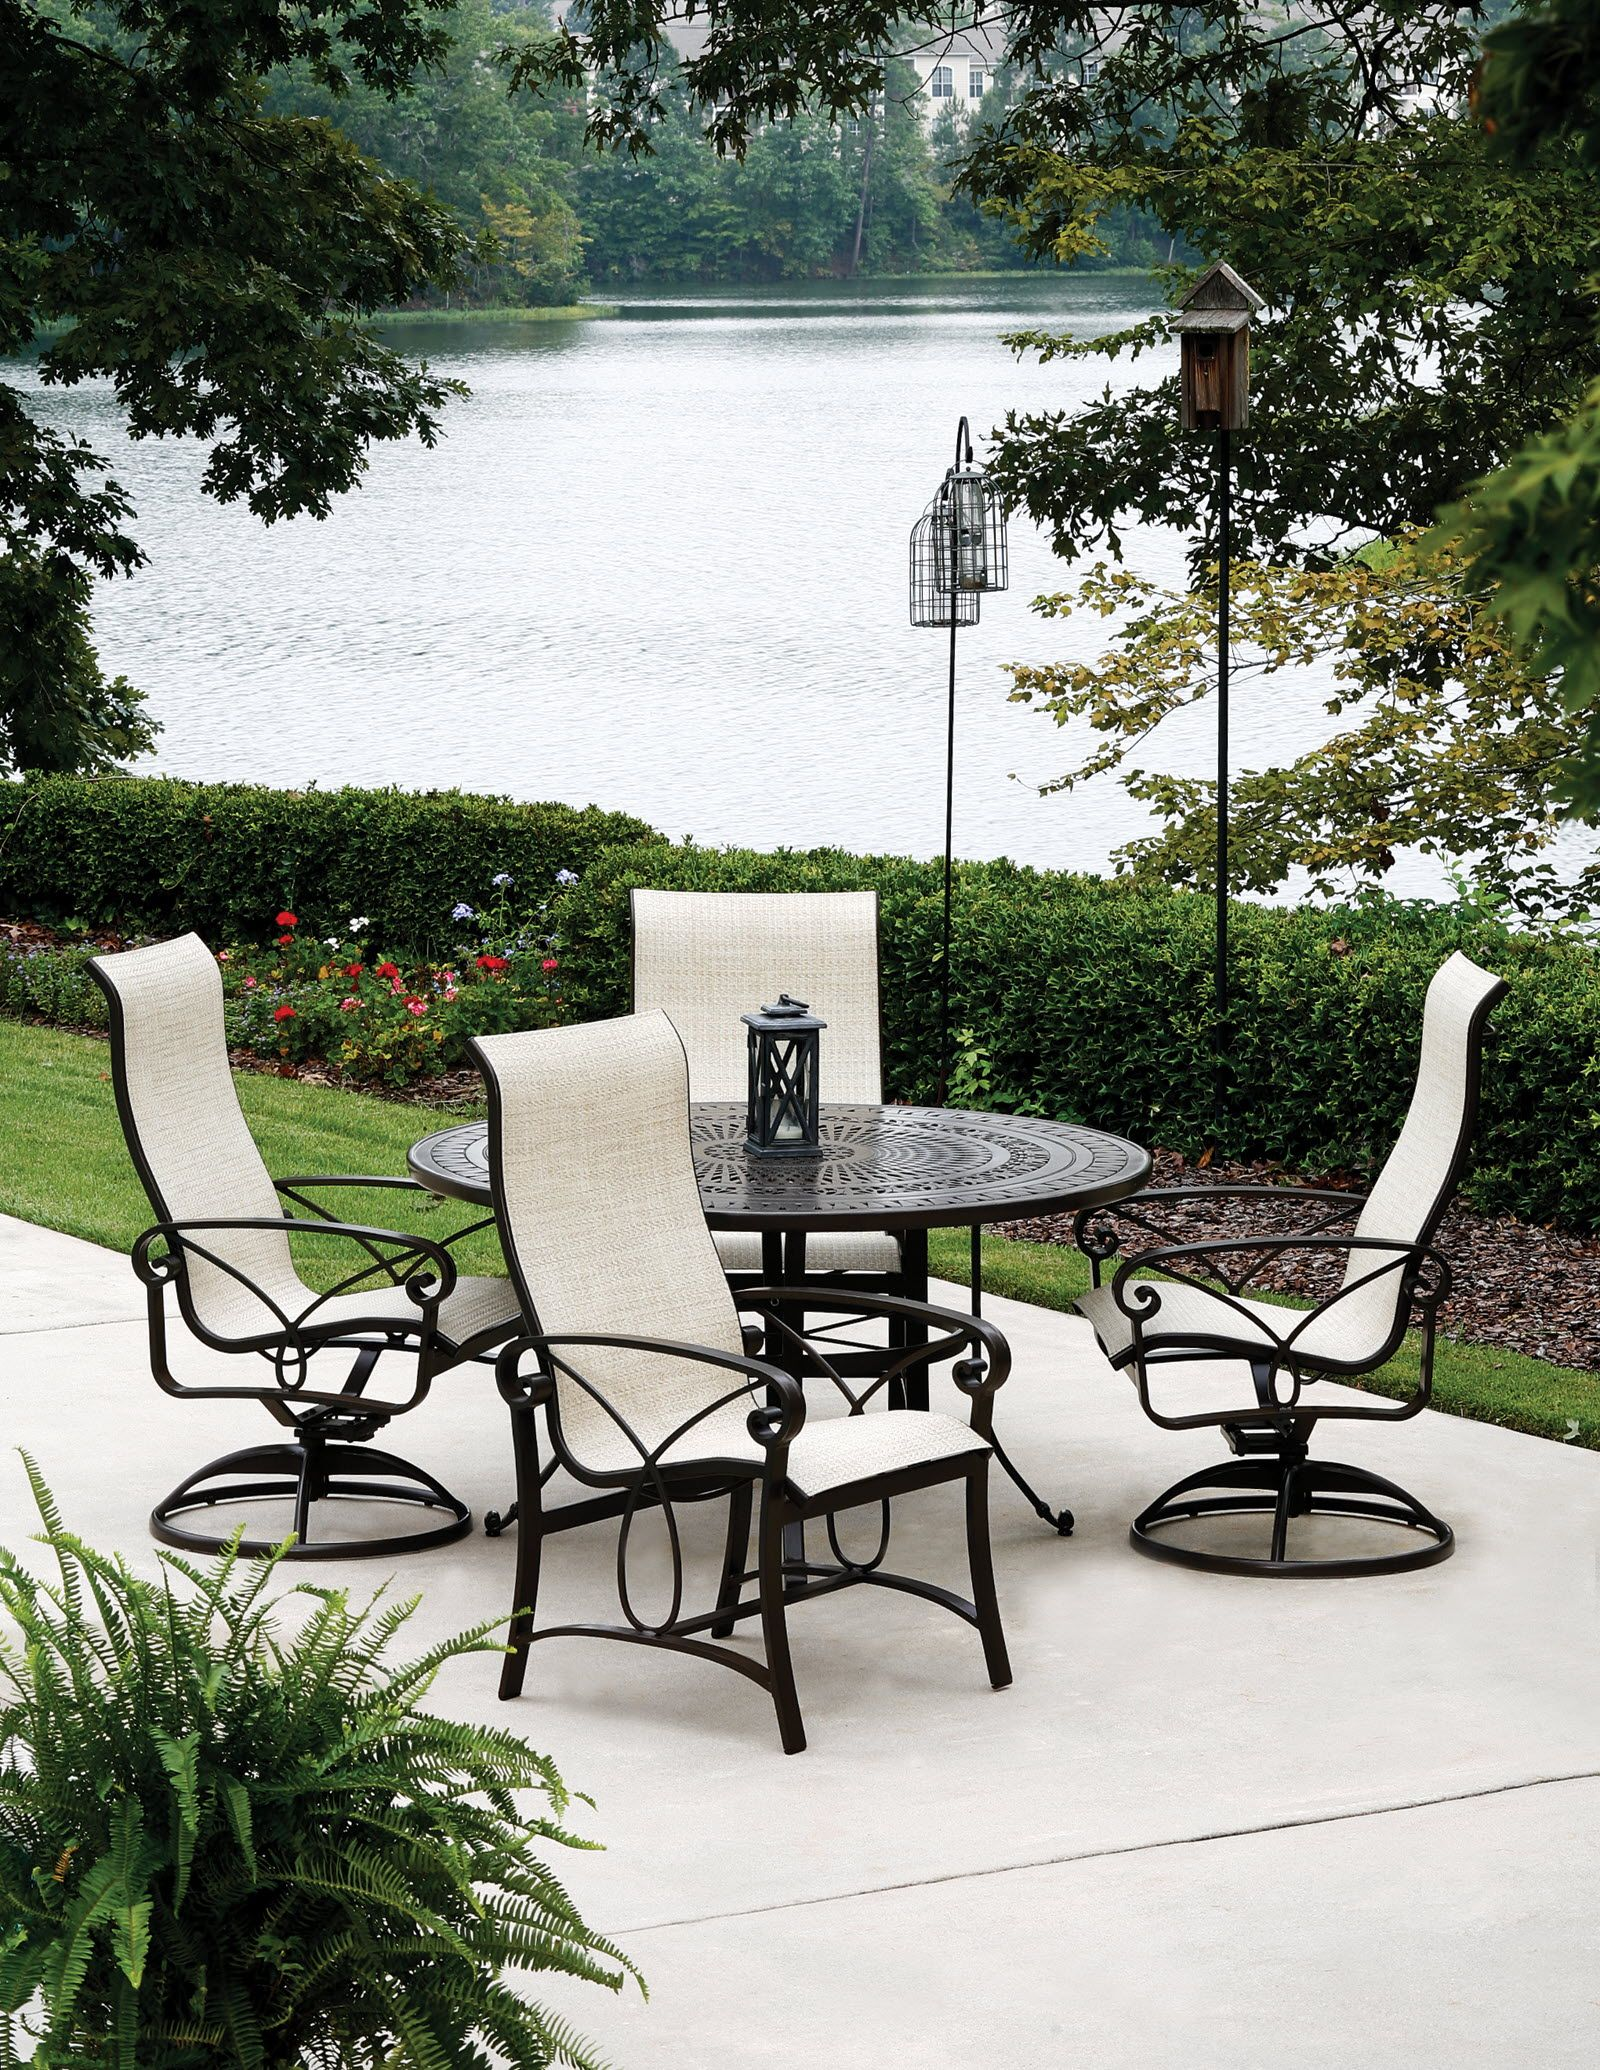 Charmant Awesome Fancy Winston Patio Furniture 79 With Additional Home Designing  Inspiration With Winston Patio Furniture